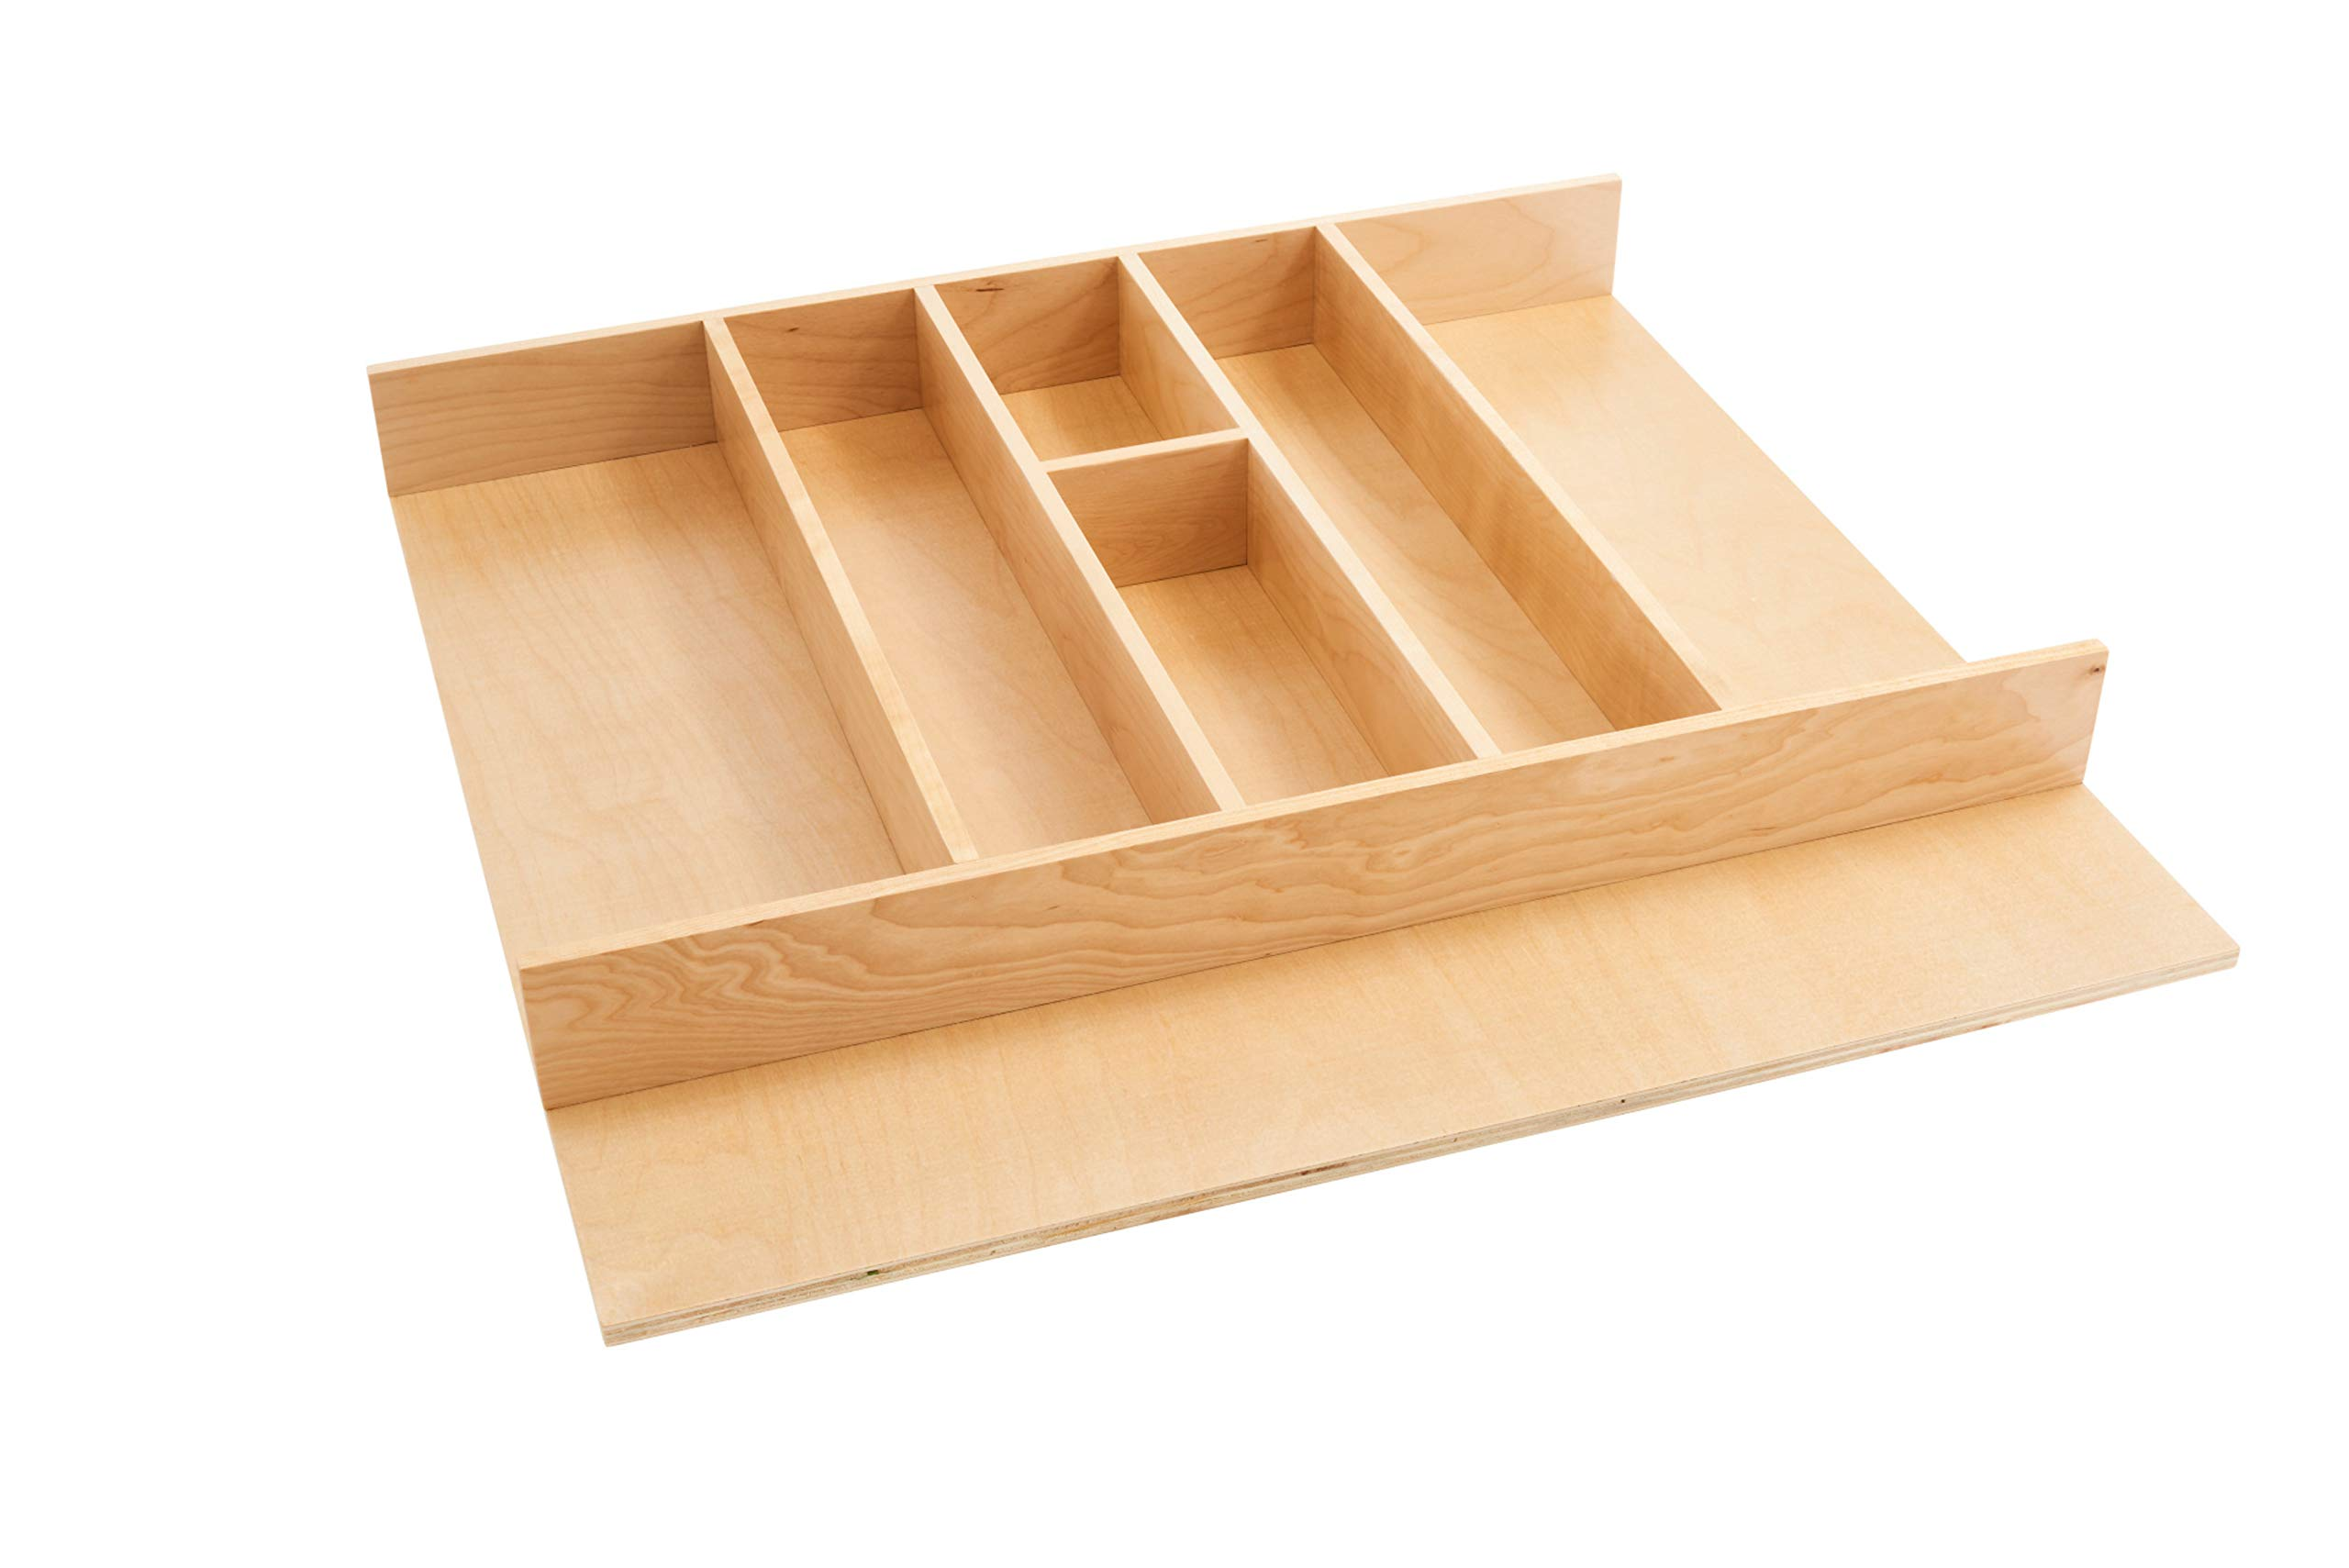 Rev-A-Shelf Tall Wood Utility Tray Insert Large Natural